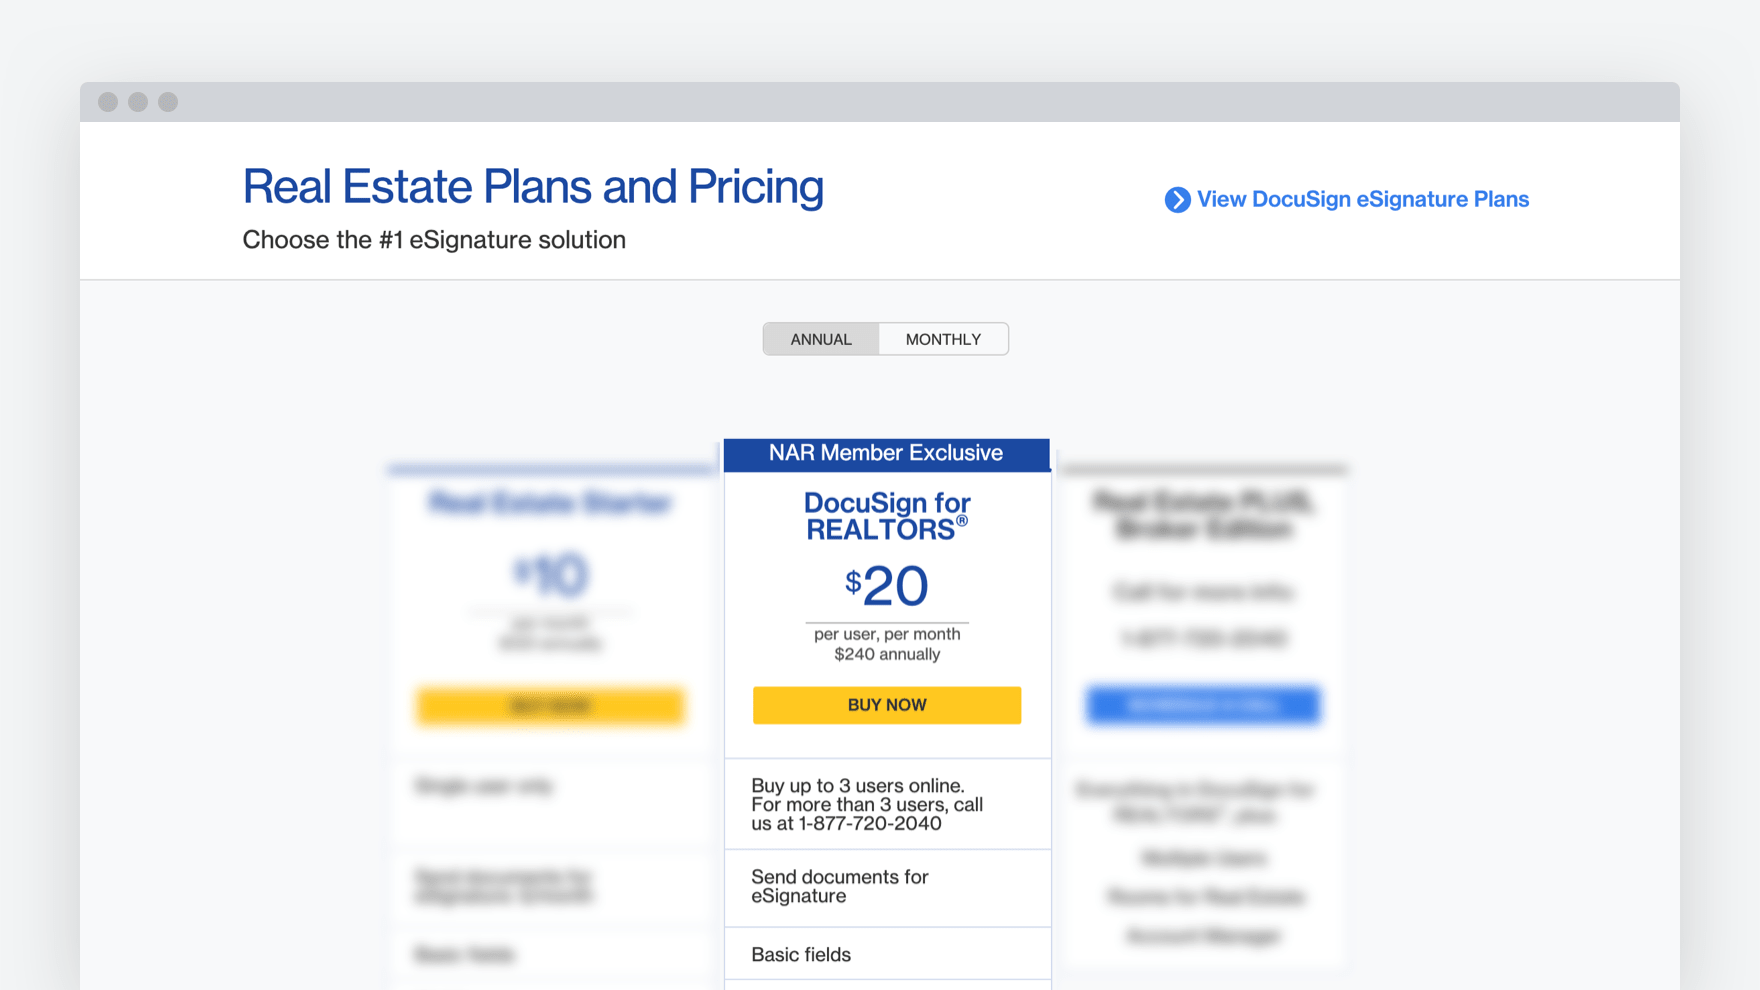 DocuSign_for_REALTORS®_pricing_plan